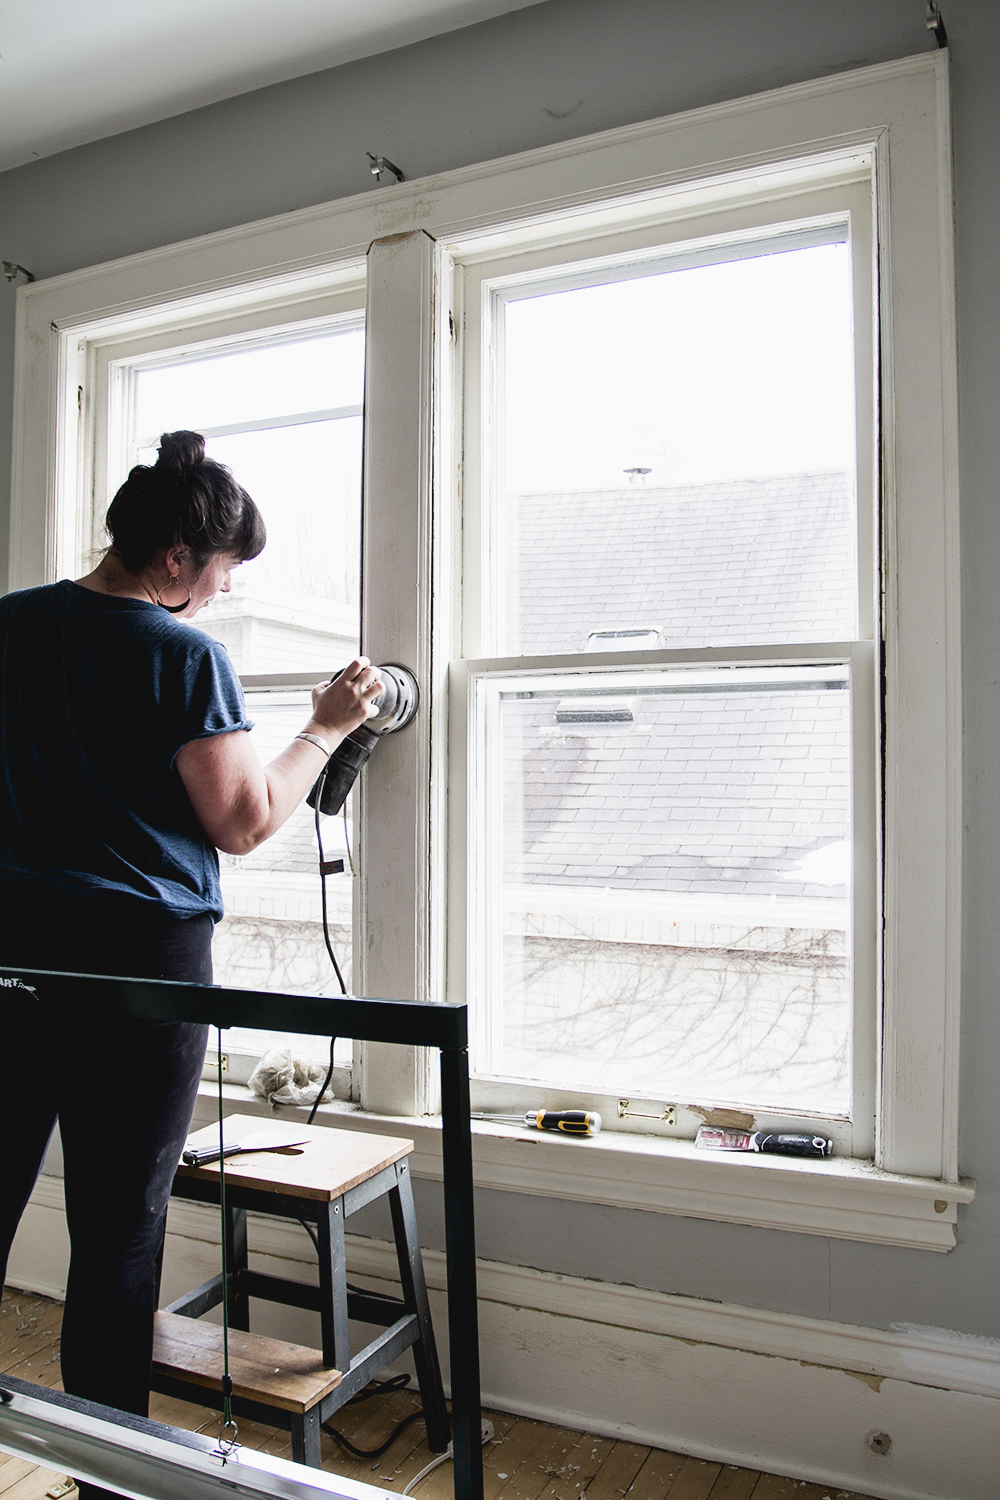 Stripping Paint on Old Doors and Repairing Antique Windows | Week 2 ORC